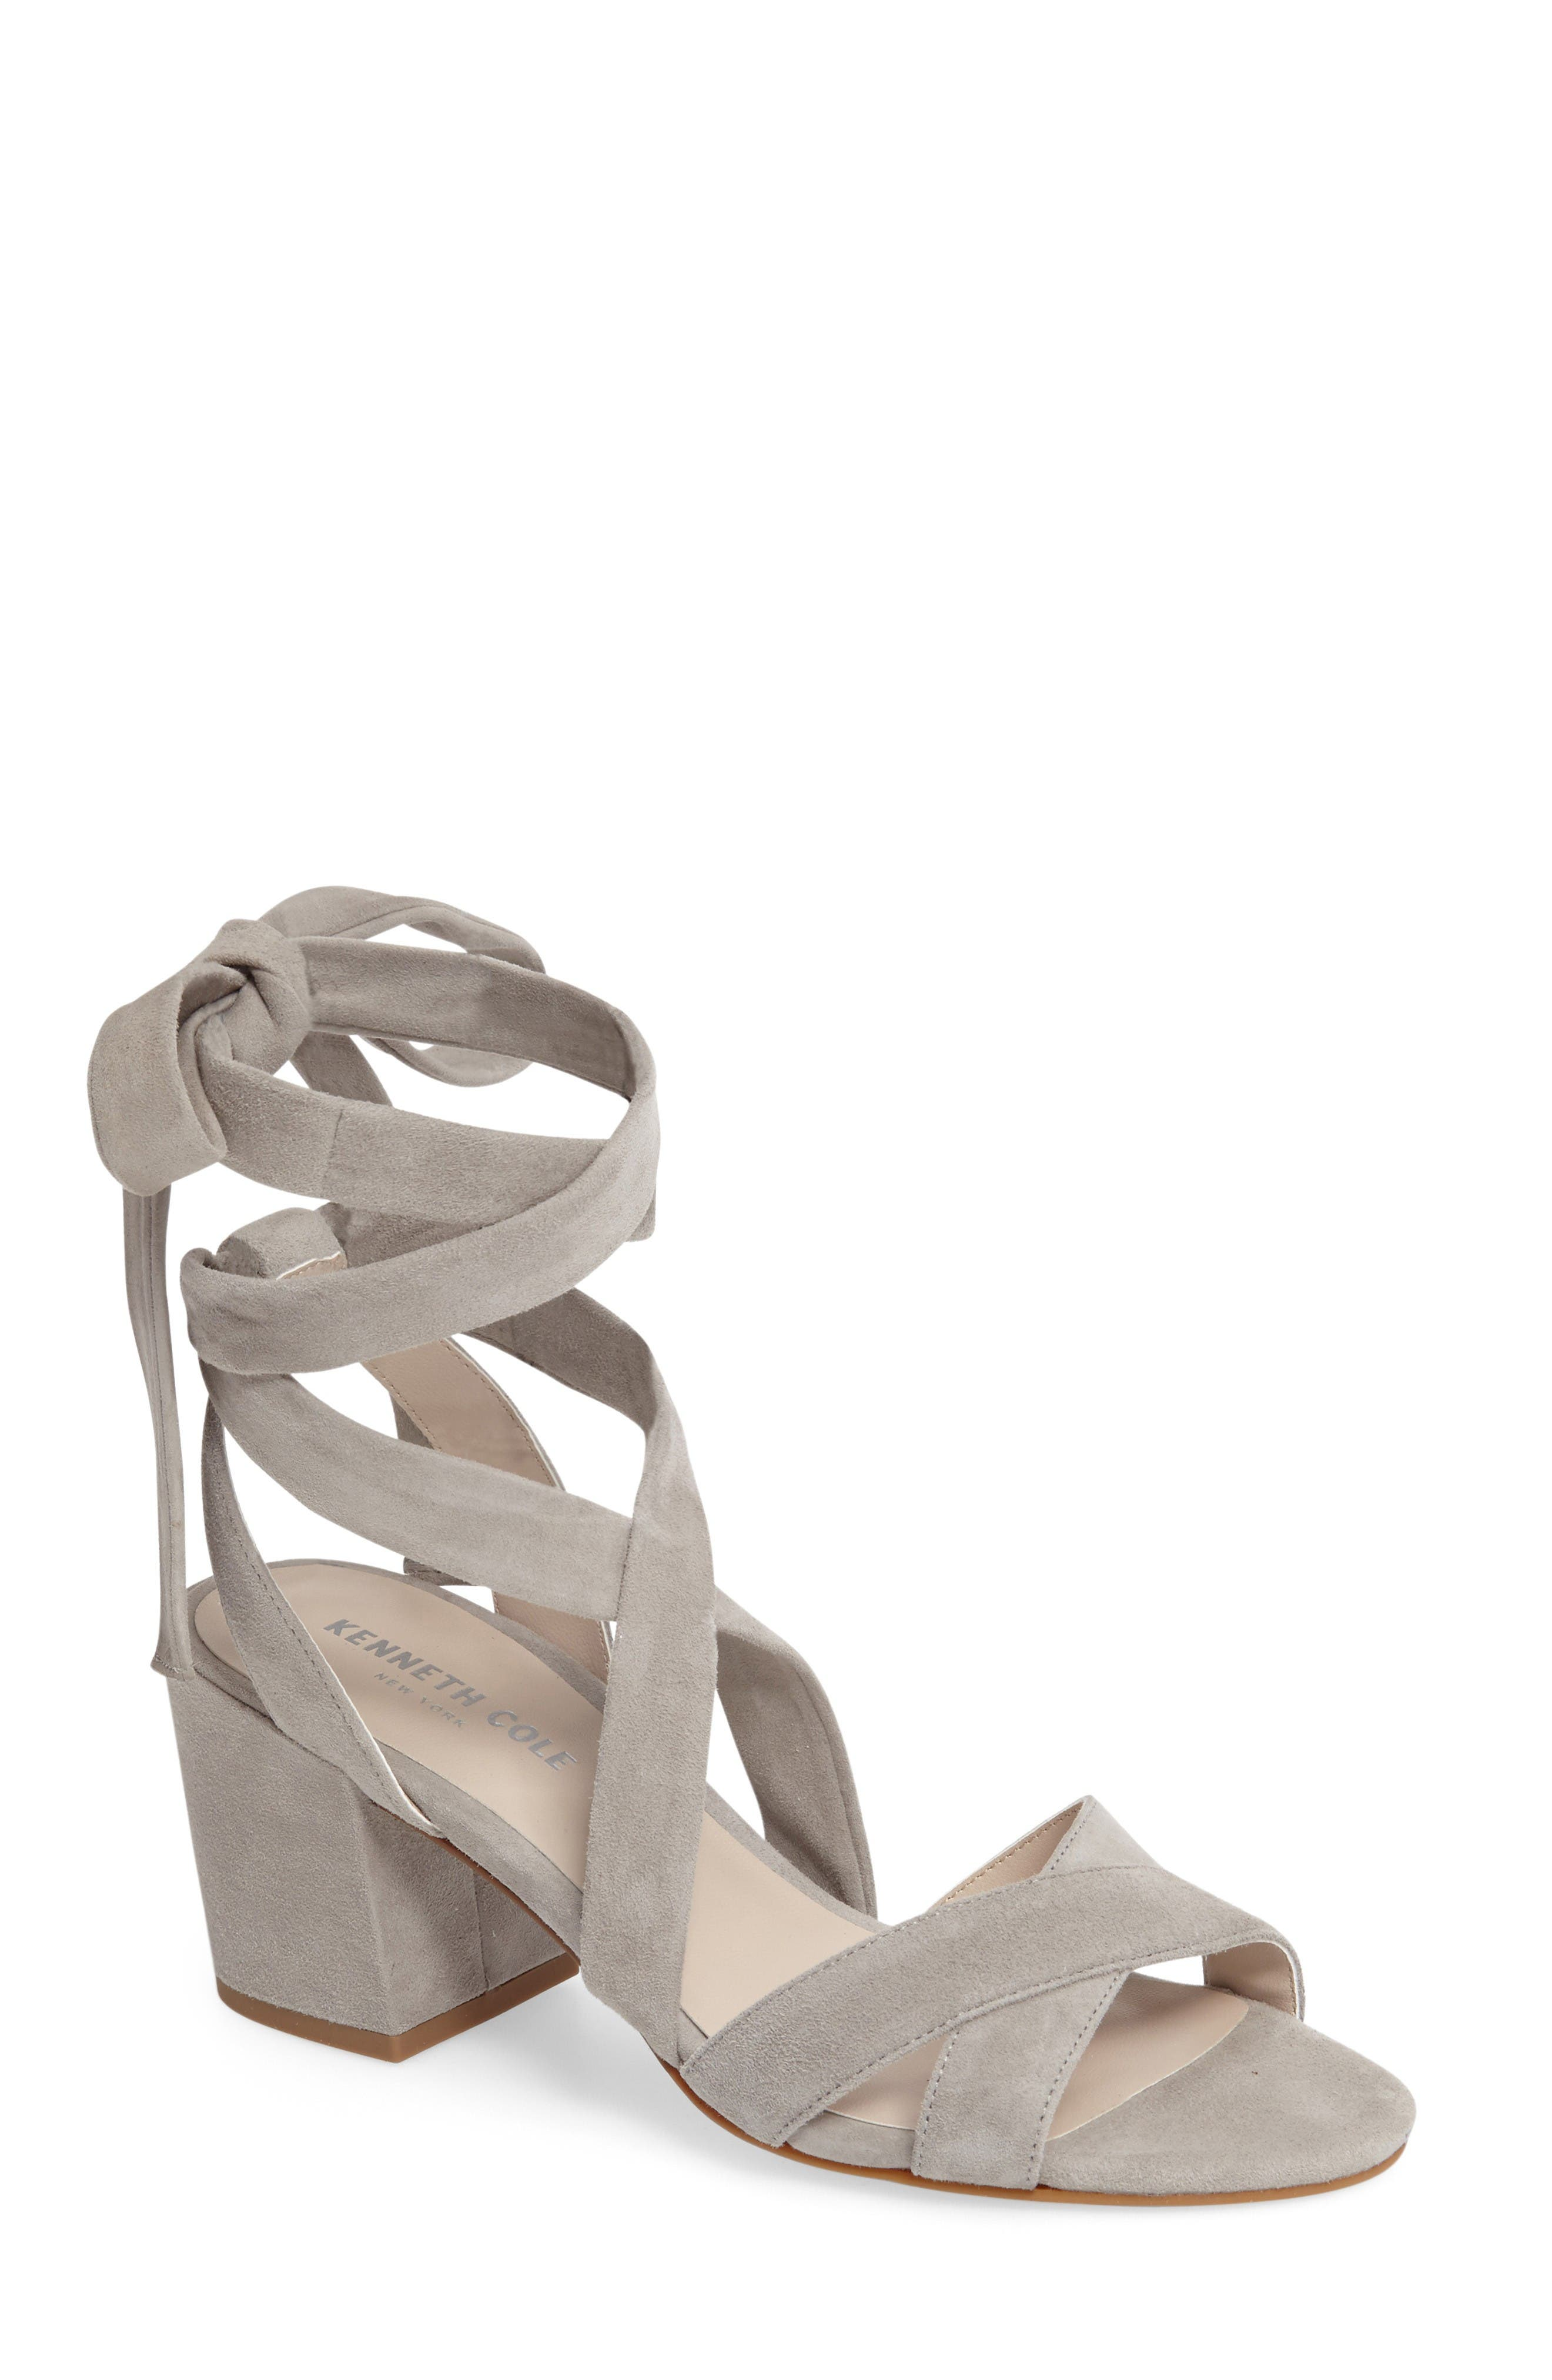 Alternate Image 1 Selected - Kenneth Cole New York 'Victoria' Leather Ankle Strap Sandal (Women)